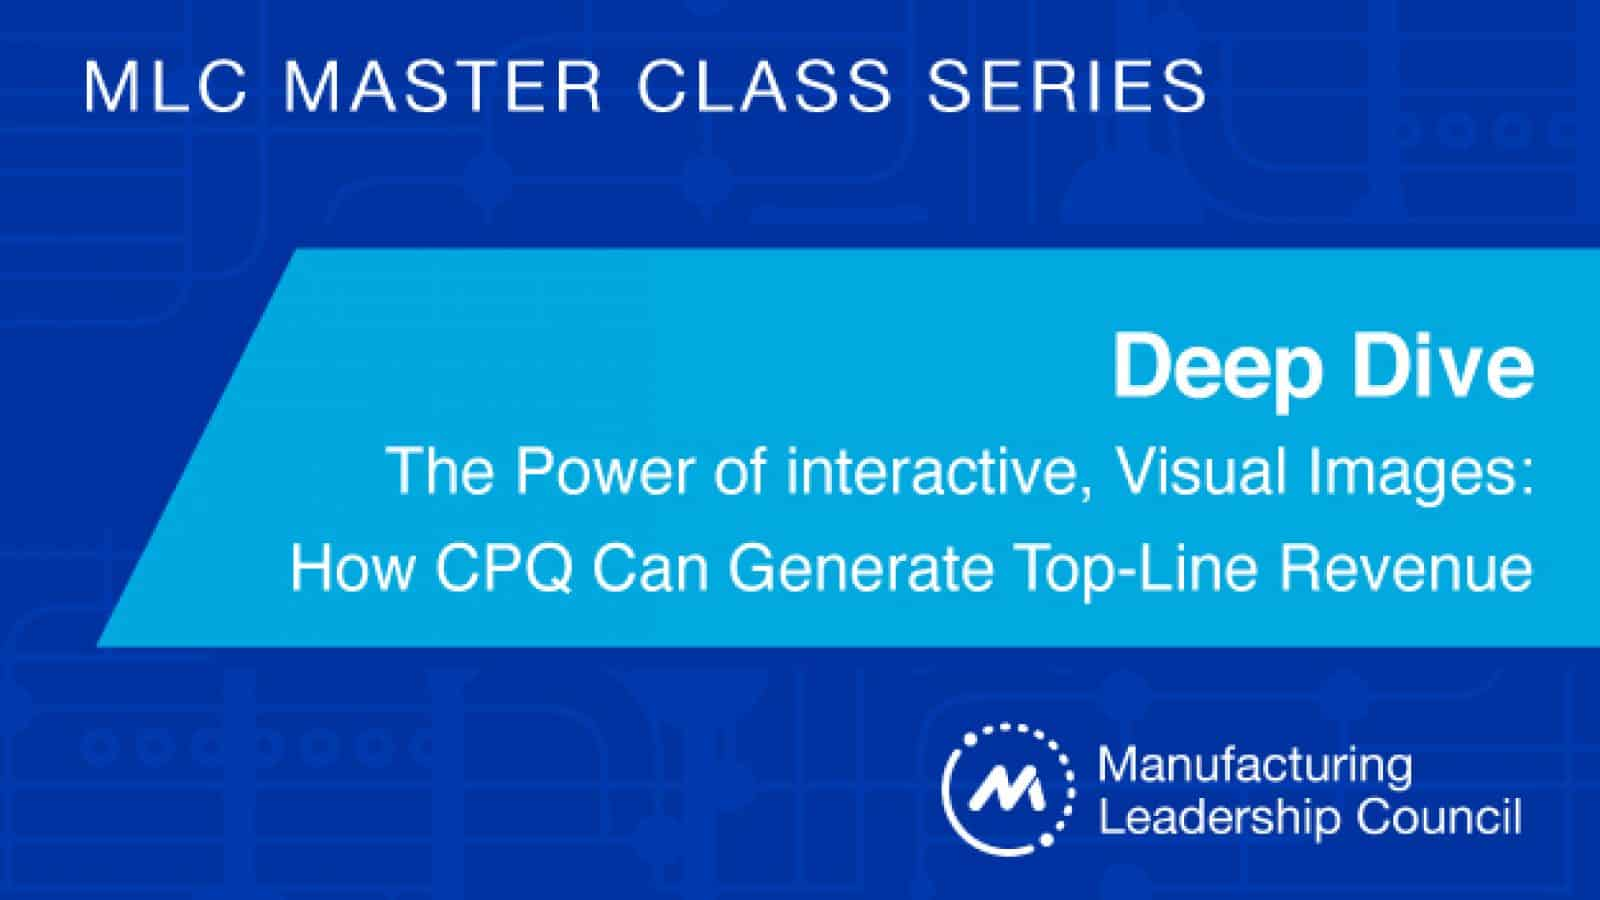 MLC Master Class Series — The Power of Interactive, Visual Images: How CPQ can generate top-line revenue